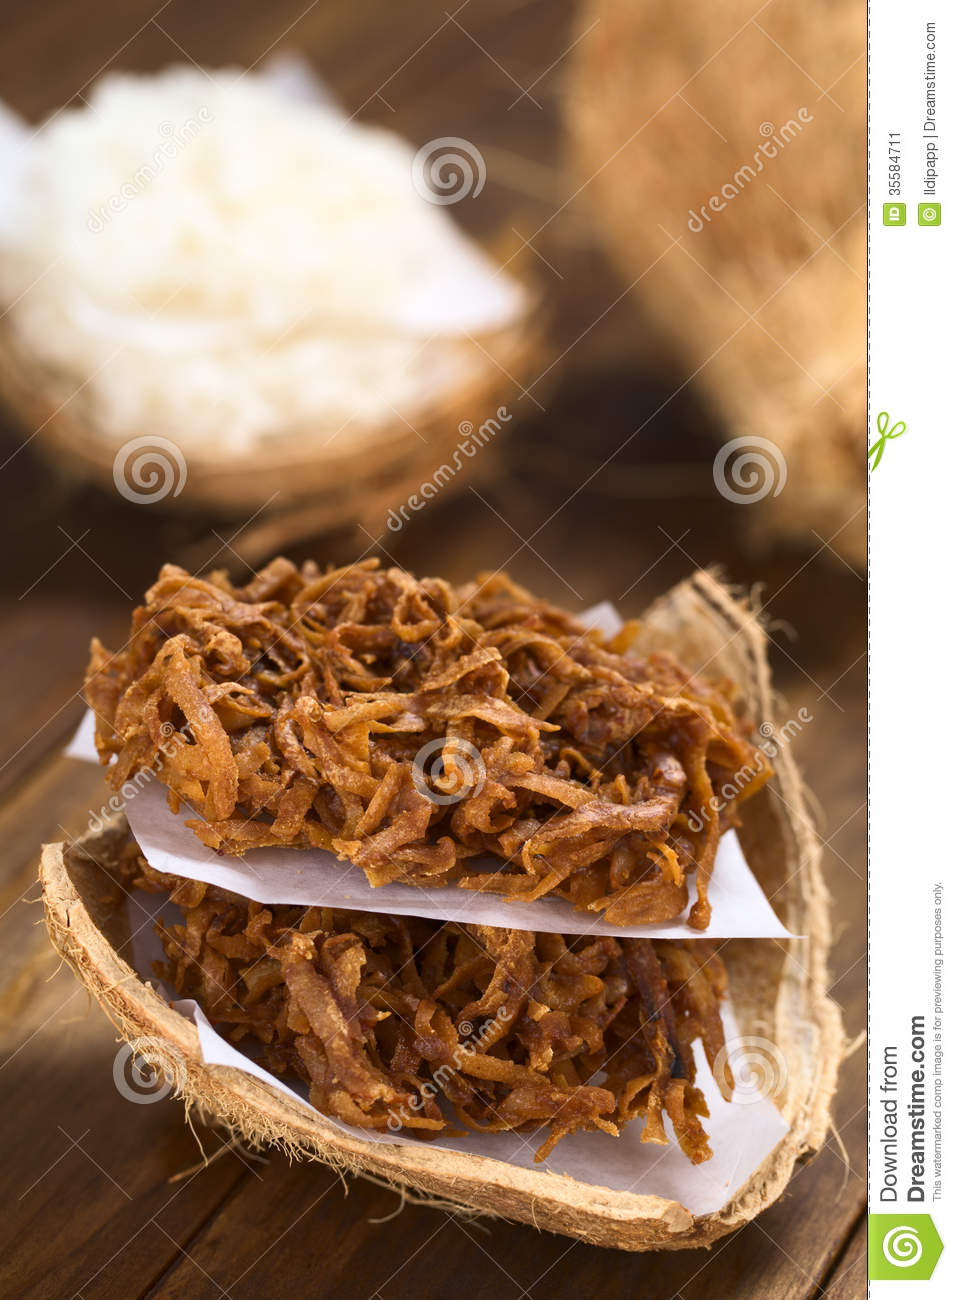 coconut shell and meat separator essay How to crack and use a whole coconut this process works perfectly fine for getting the shell off, but it warms the meat first-person essays.